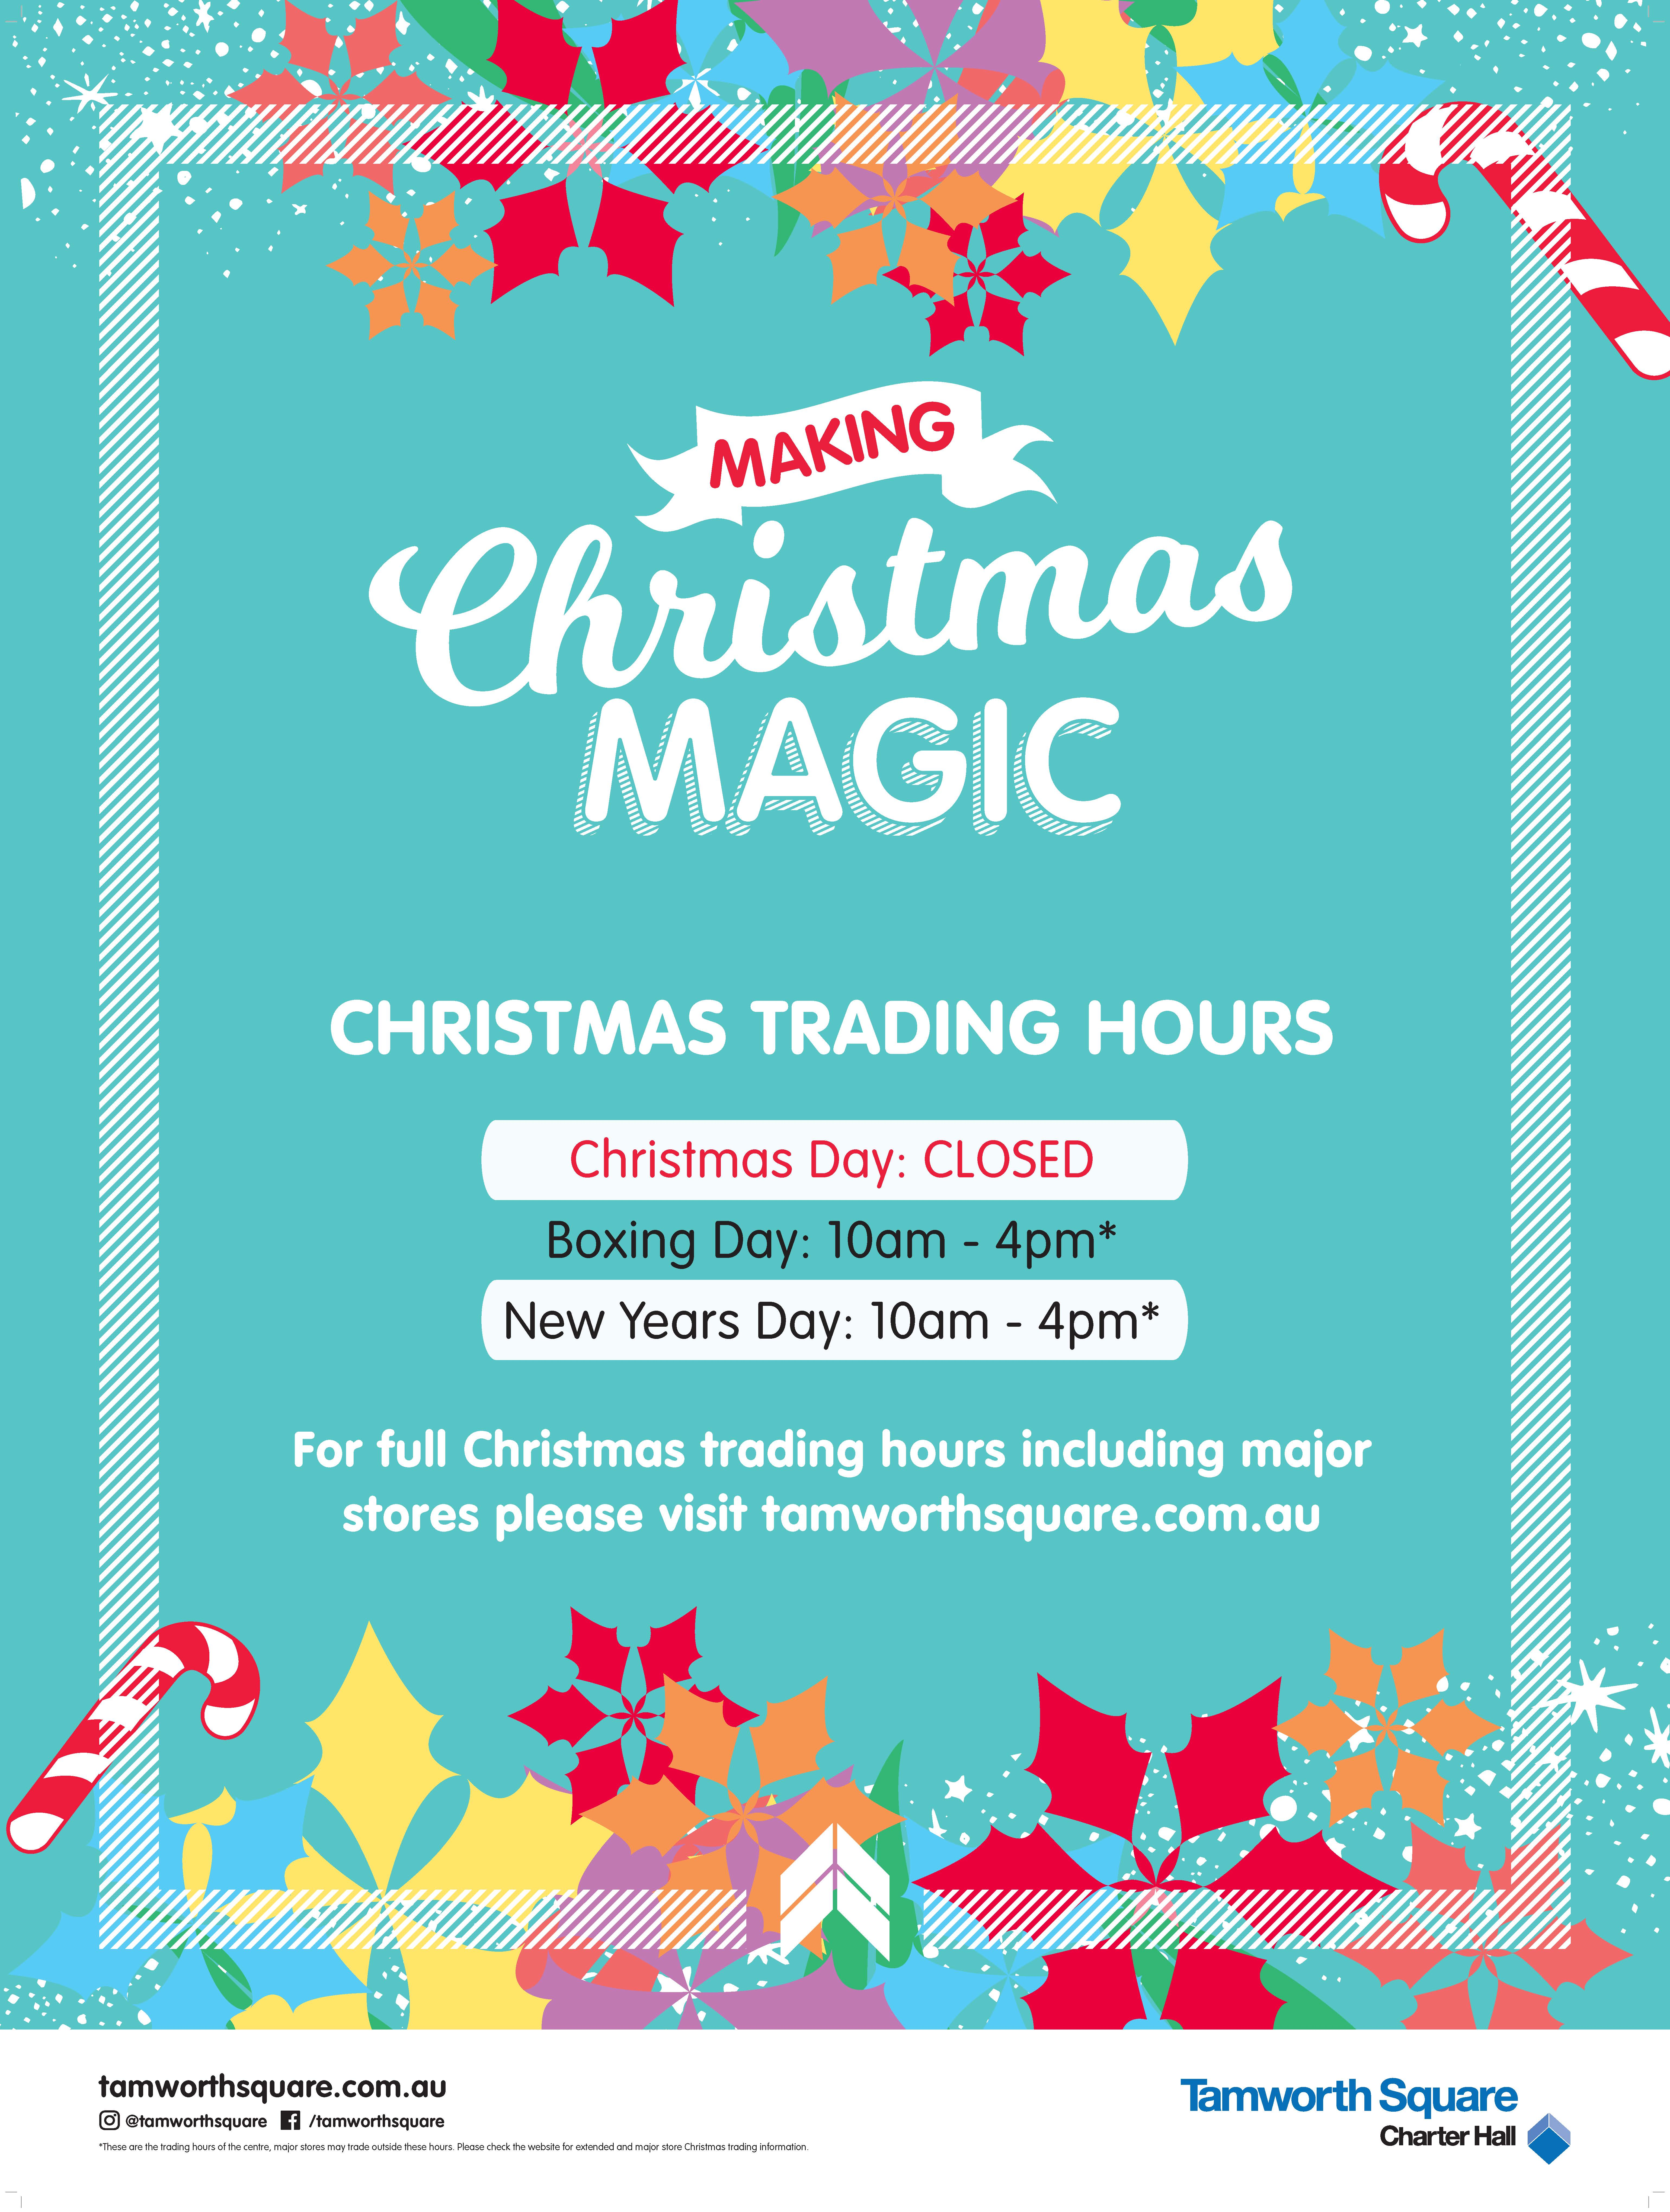 CH4398_Xmas_Posters_2018_TamworthSquare_TradingHours_FA2